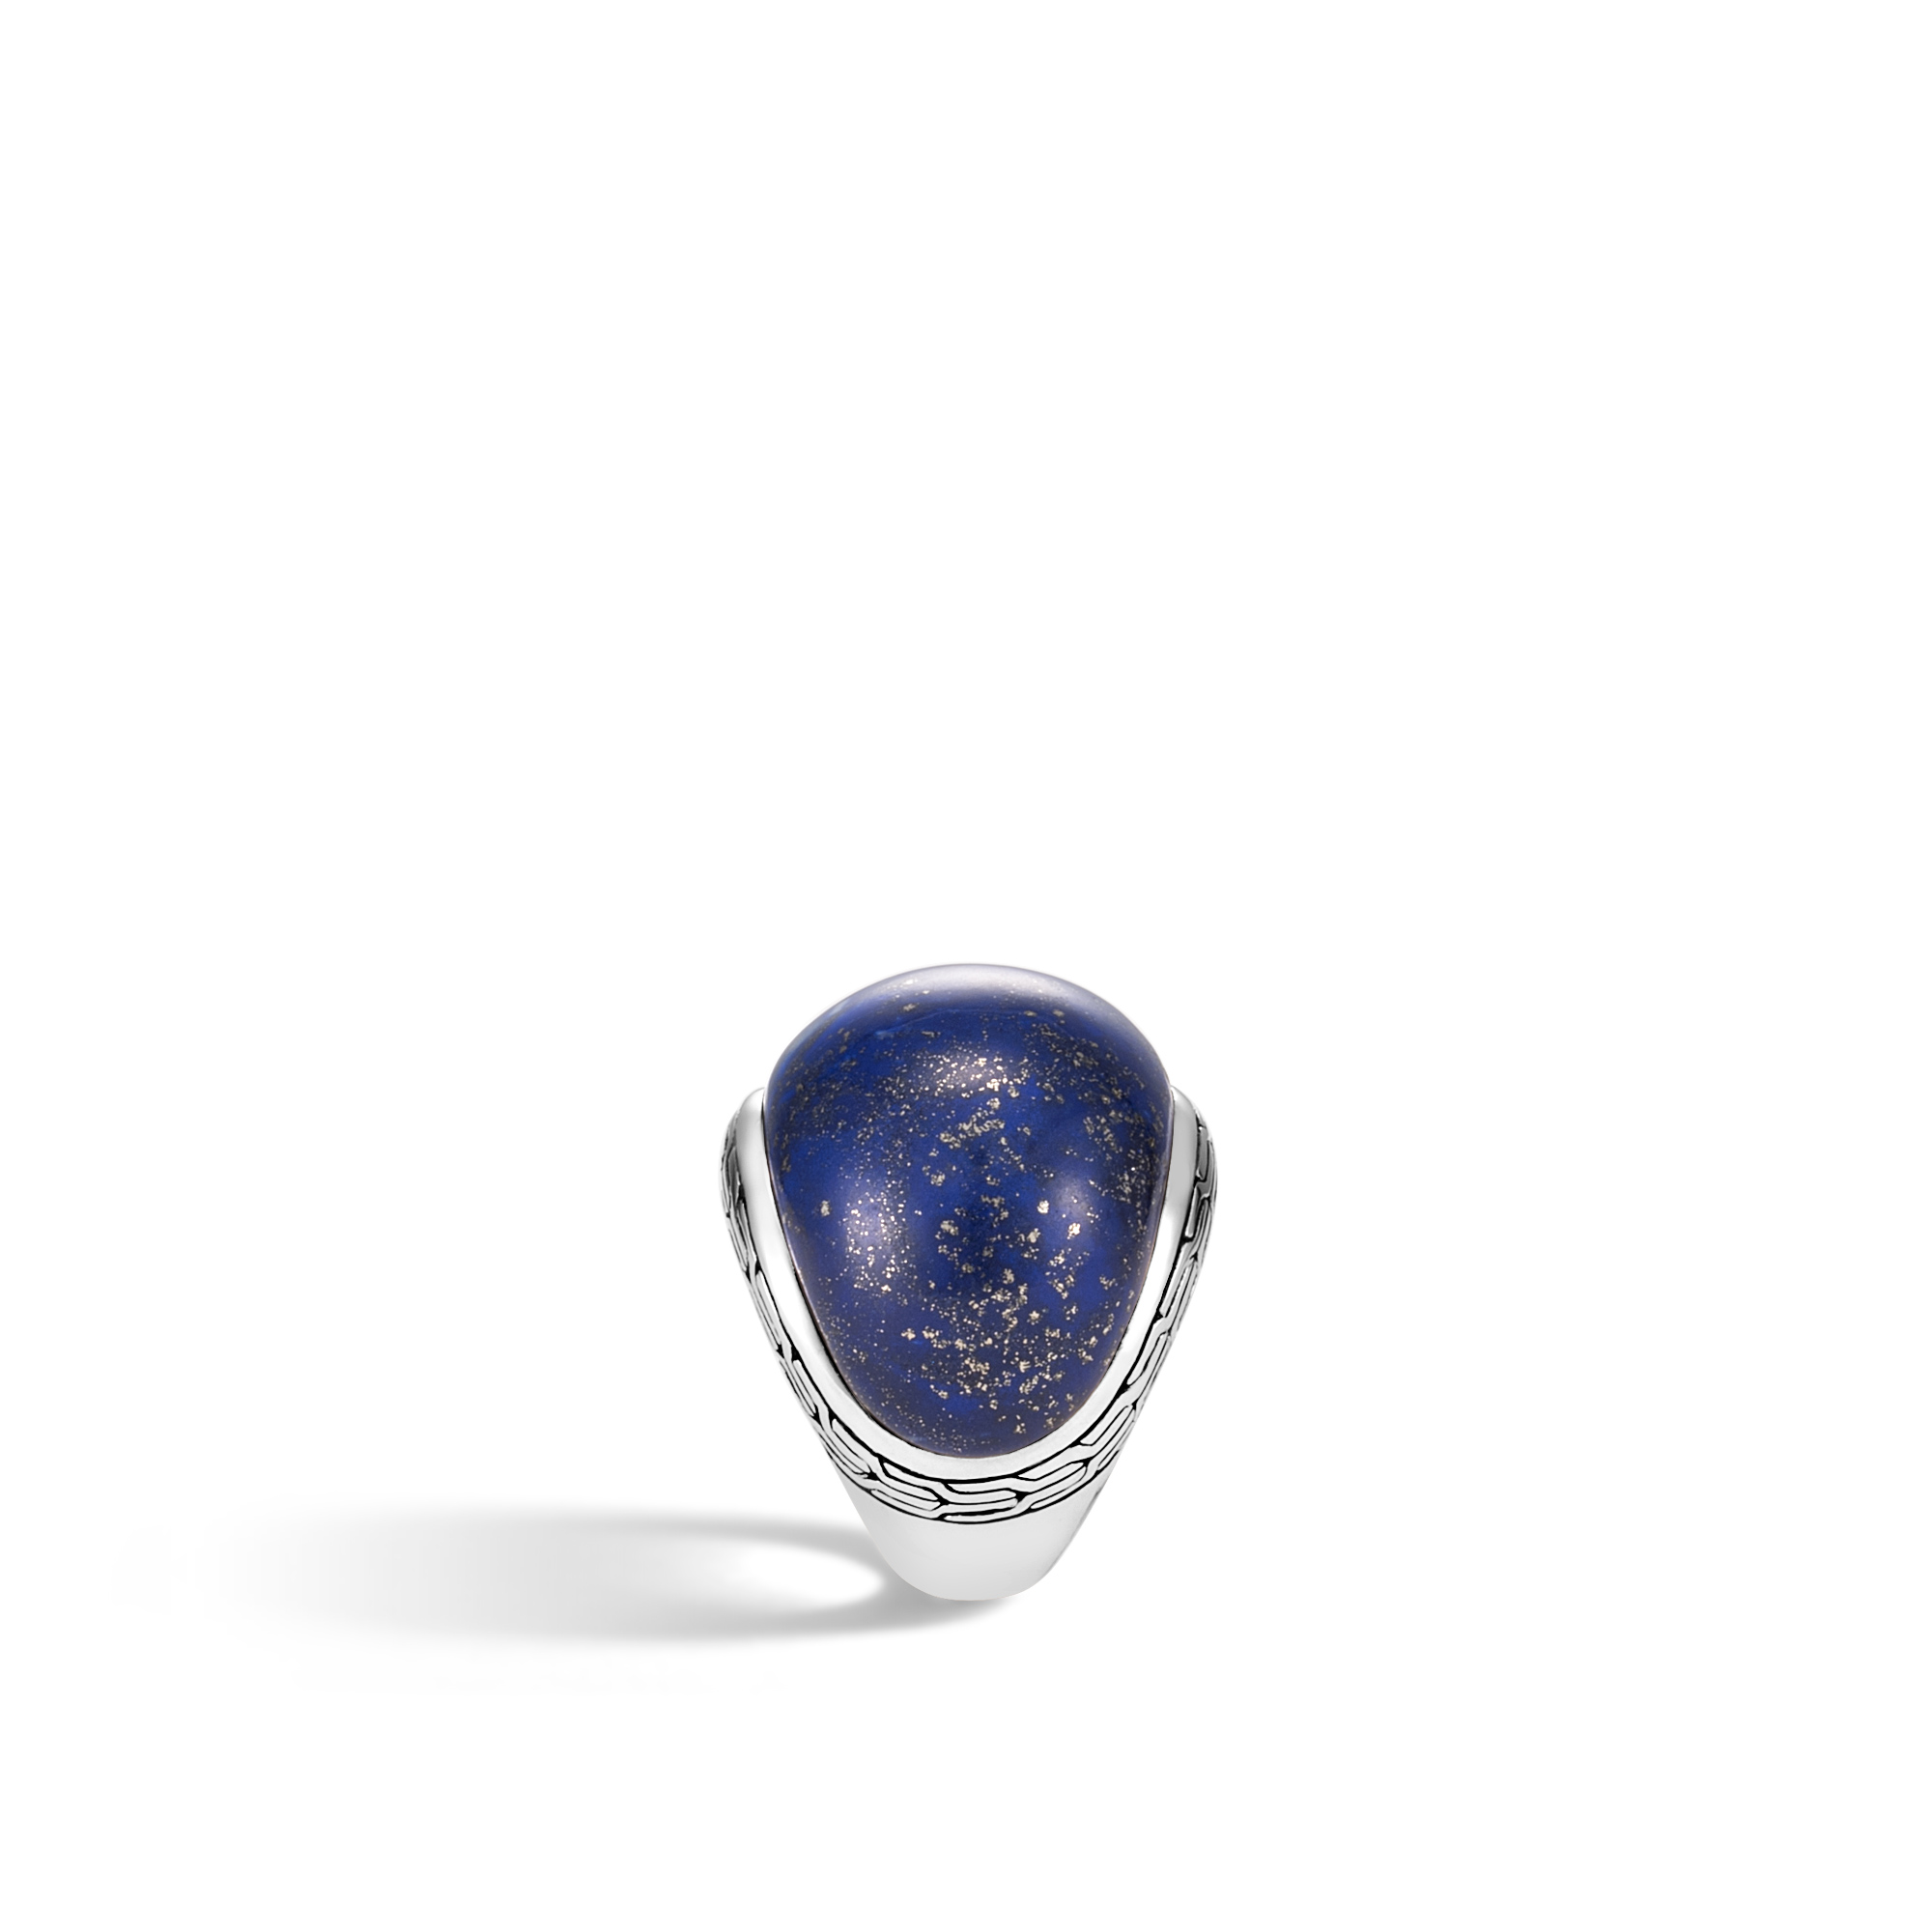 Classic Chain 22MM Dome Ring in Silver with Gemstone, Lapis Lazuli, large